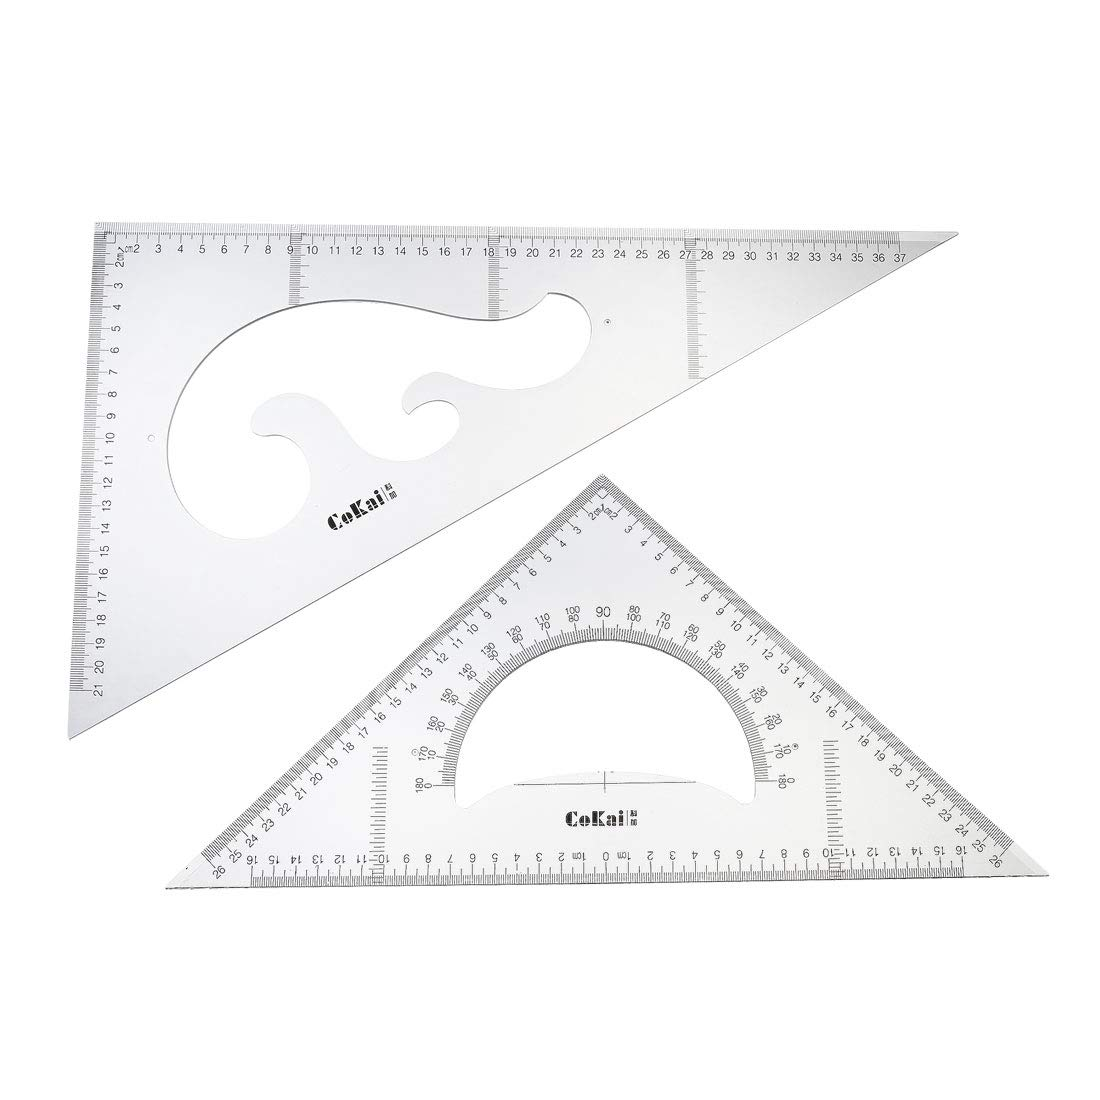 uxcell Triangle Ruler Square Set with Built-in Protractor 37mm 30/60 and 26mm 45/90 Degrees Set of 2 by uxcell